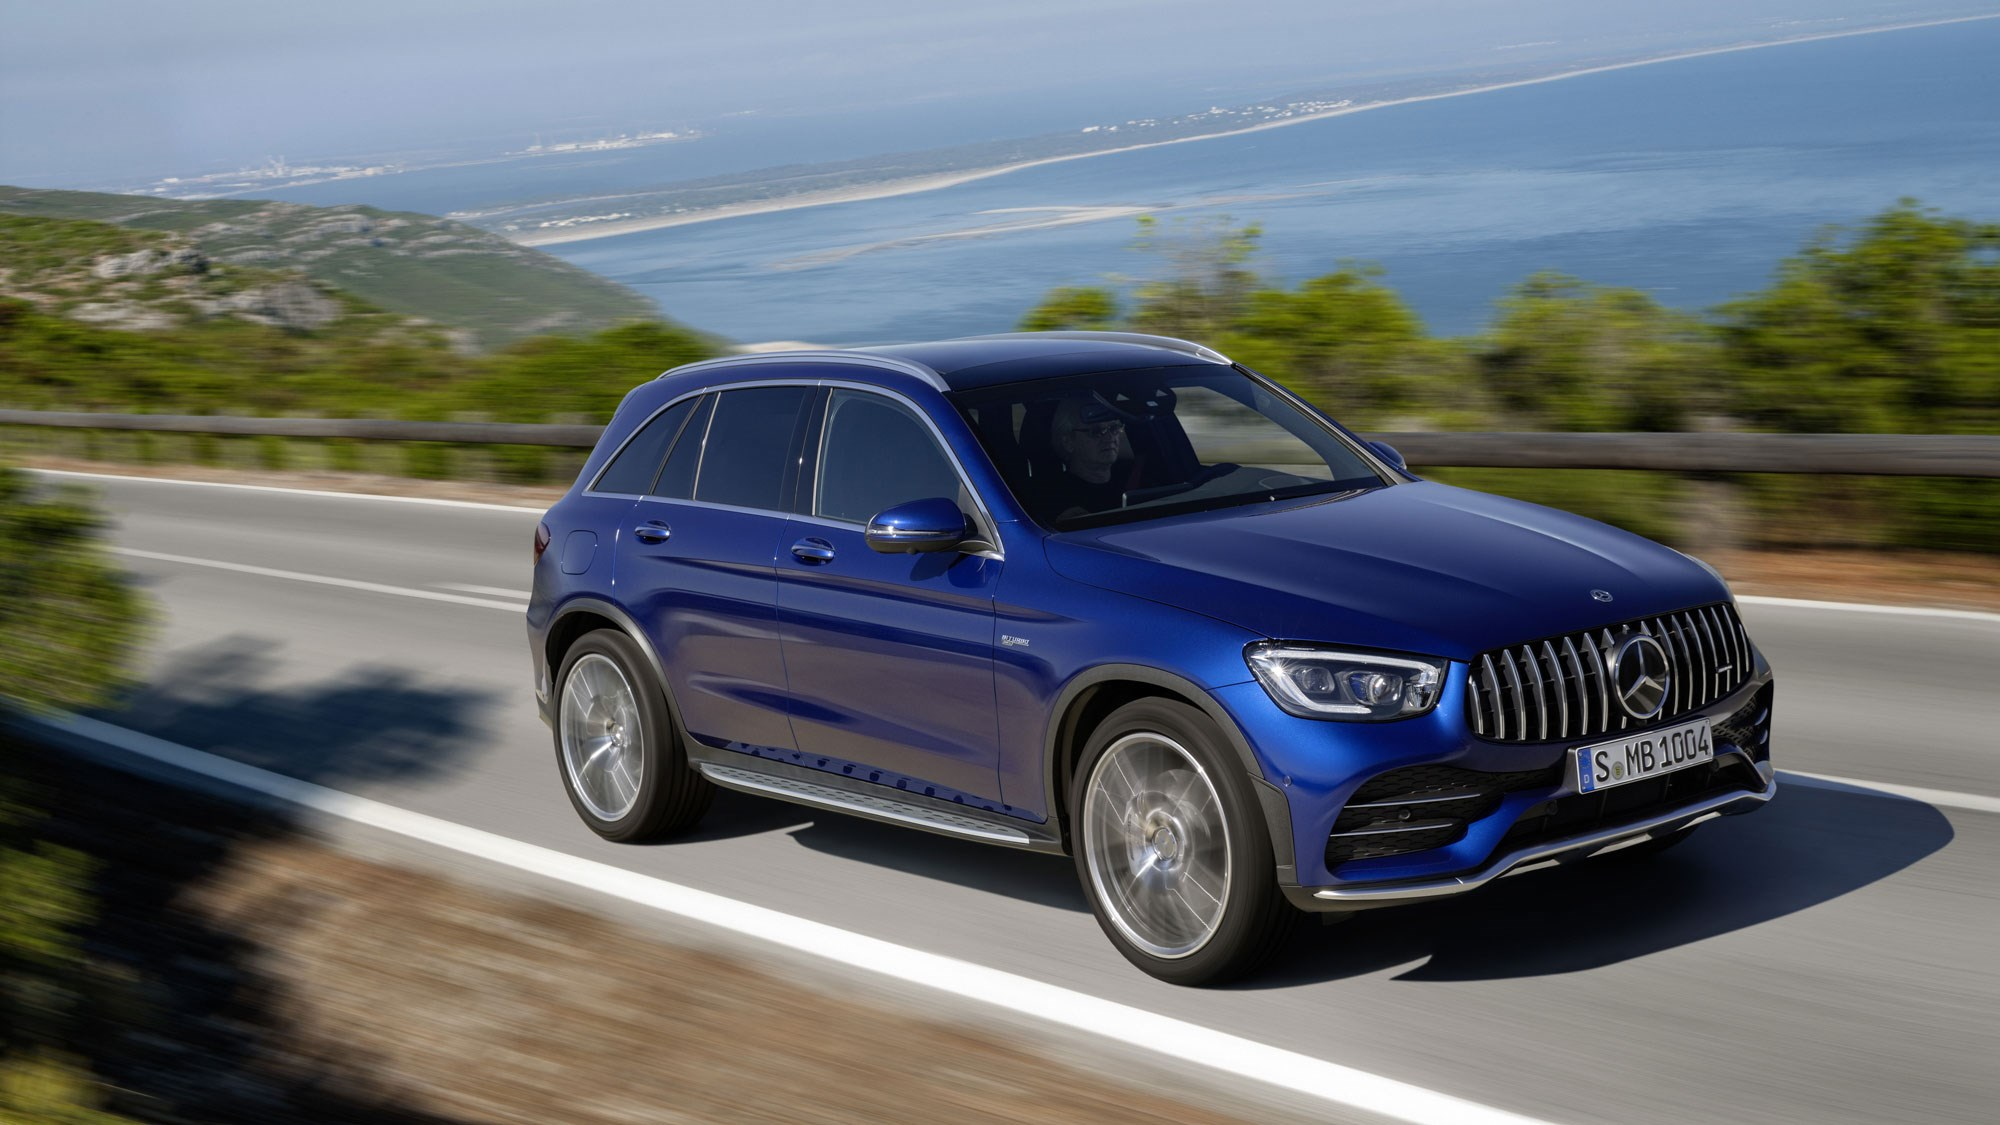 2020 Mercedes-Benz GLC: Update, Changes, More Power, Release >> Mercedes Benz Glc 385bhp Amg Glc 43 Joins The Range Car